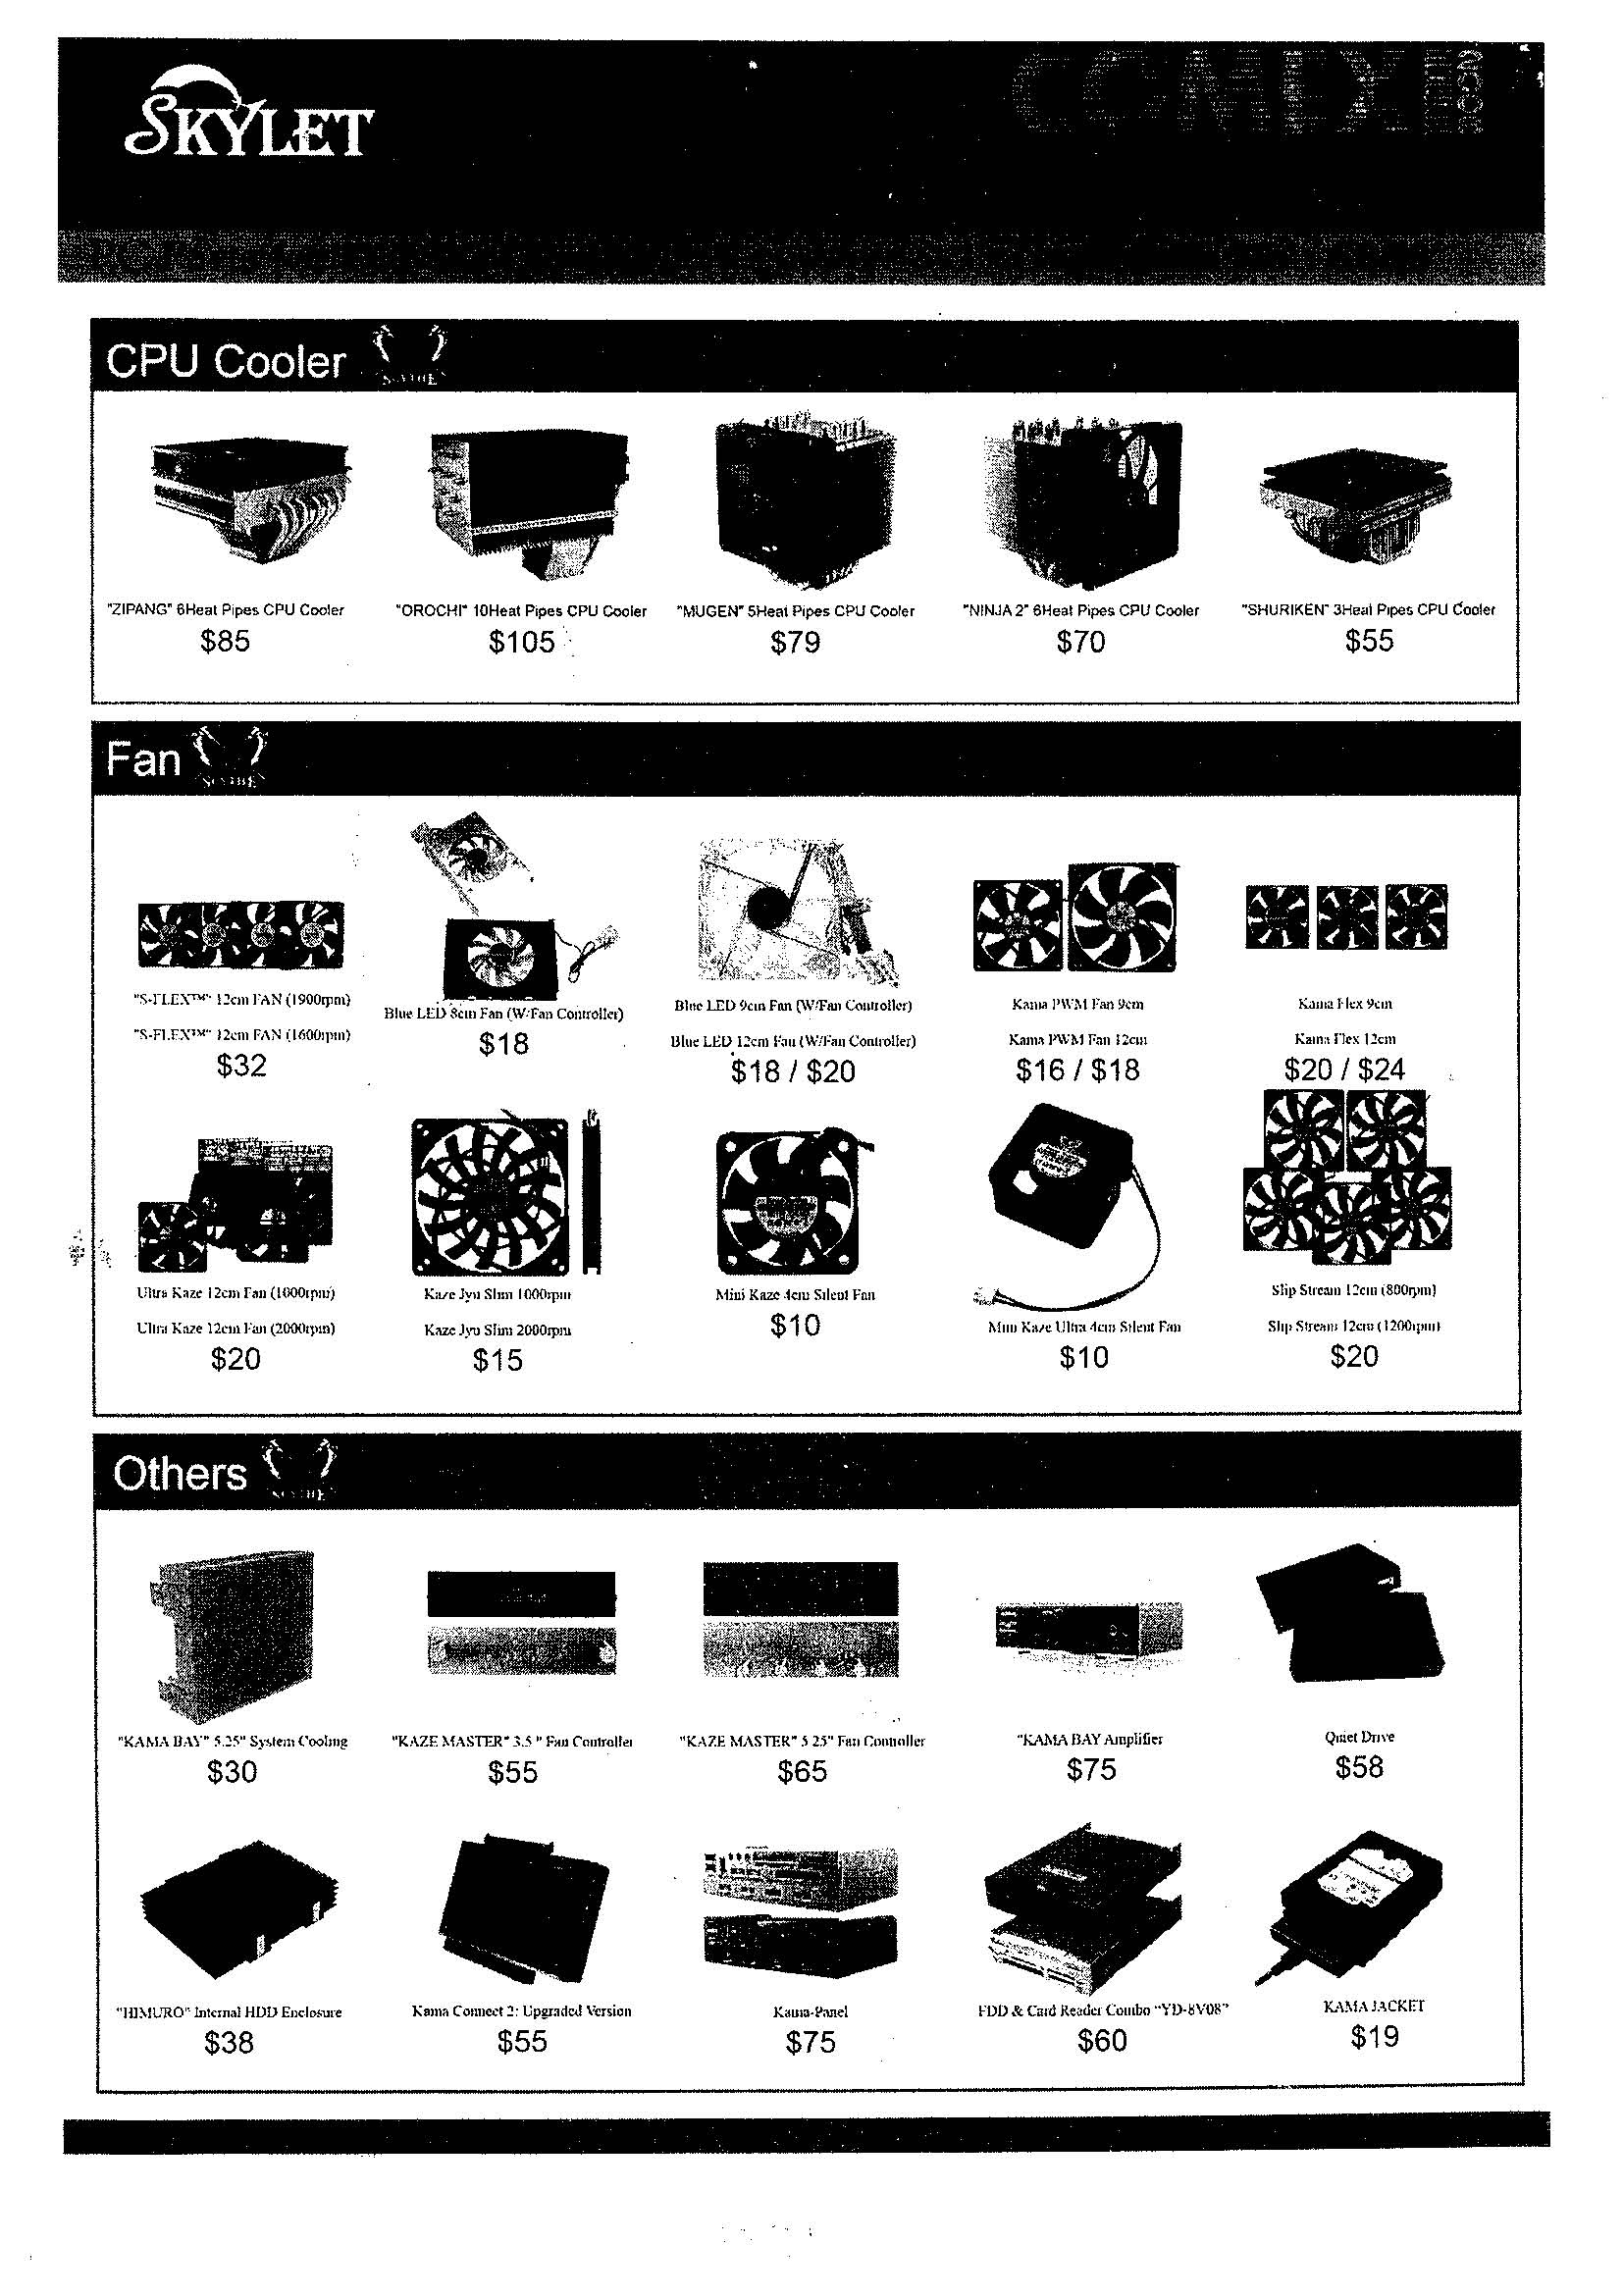 Comex 2008 price list image brochure of Skylet Page 2